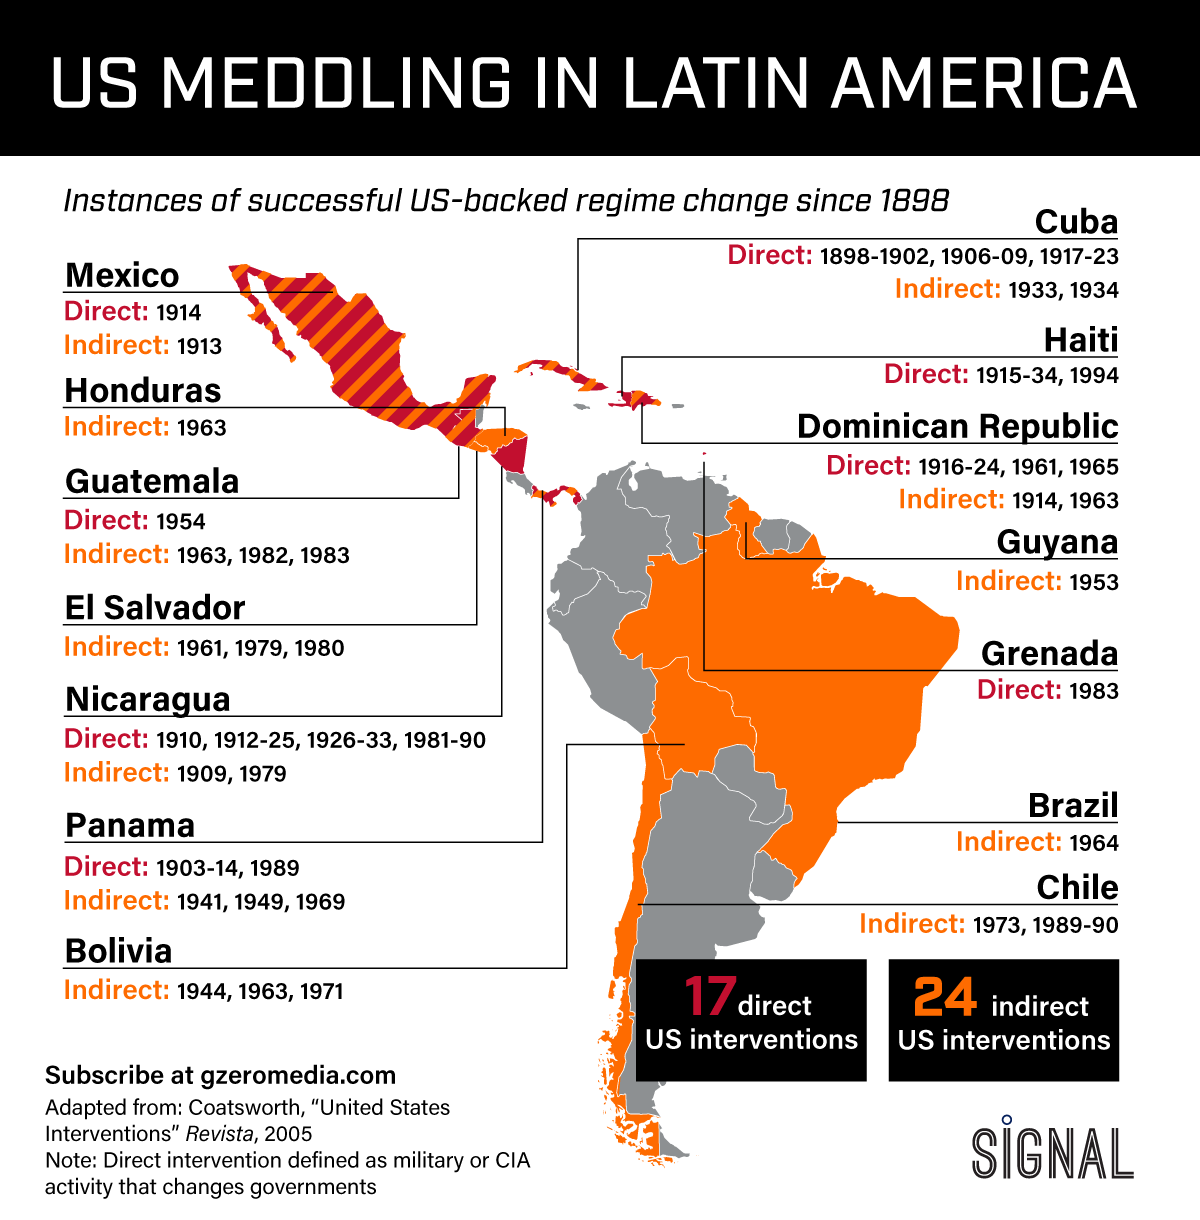 GRAPHIC TRUTH: US MEDDLING IN THE AMERICAS